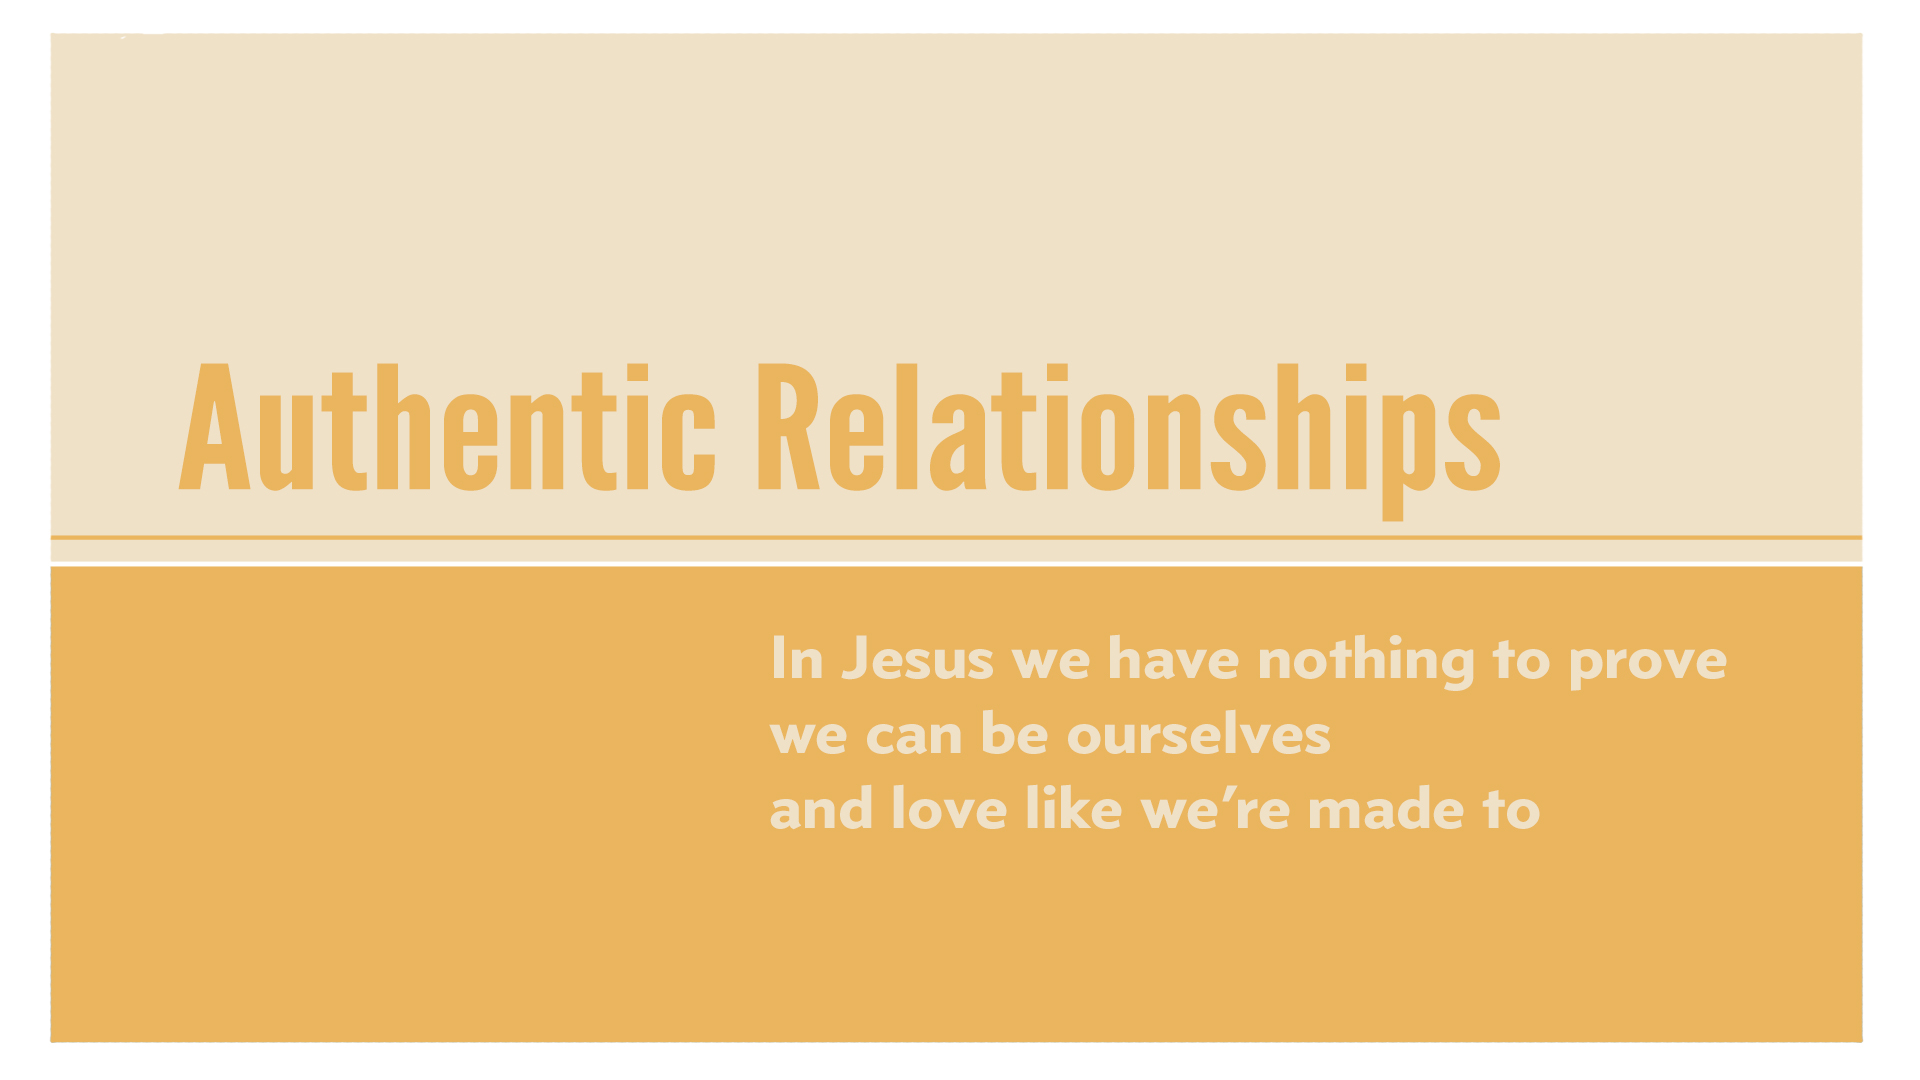 Jesus did not die just to give us a personal, private relationship with God. He died to fix all that is wrong with the world, including our relationships, which can now be characterized by honesty and forgiveness instead of self-preservation and hiding. We're fighting to live into these relationships we were made for.